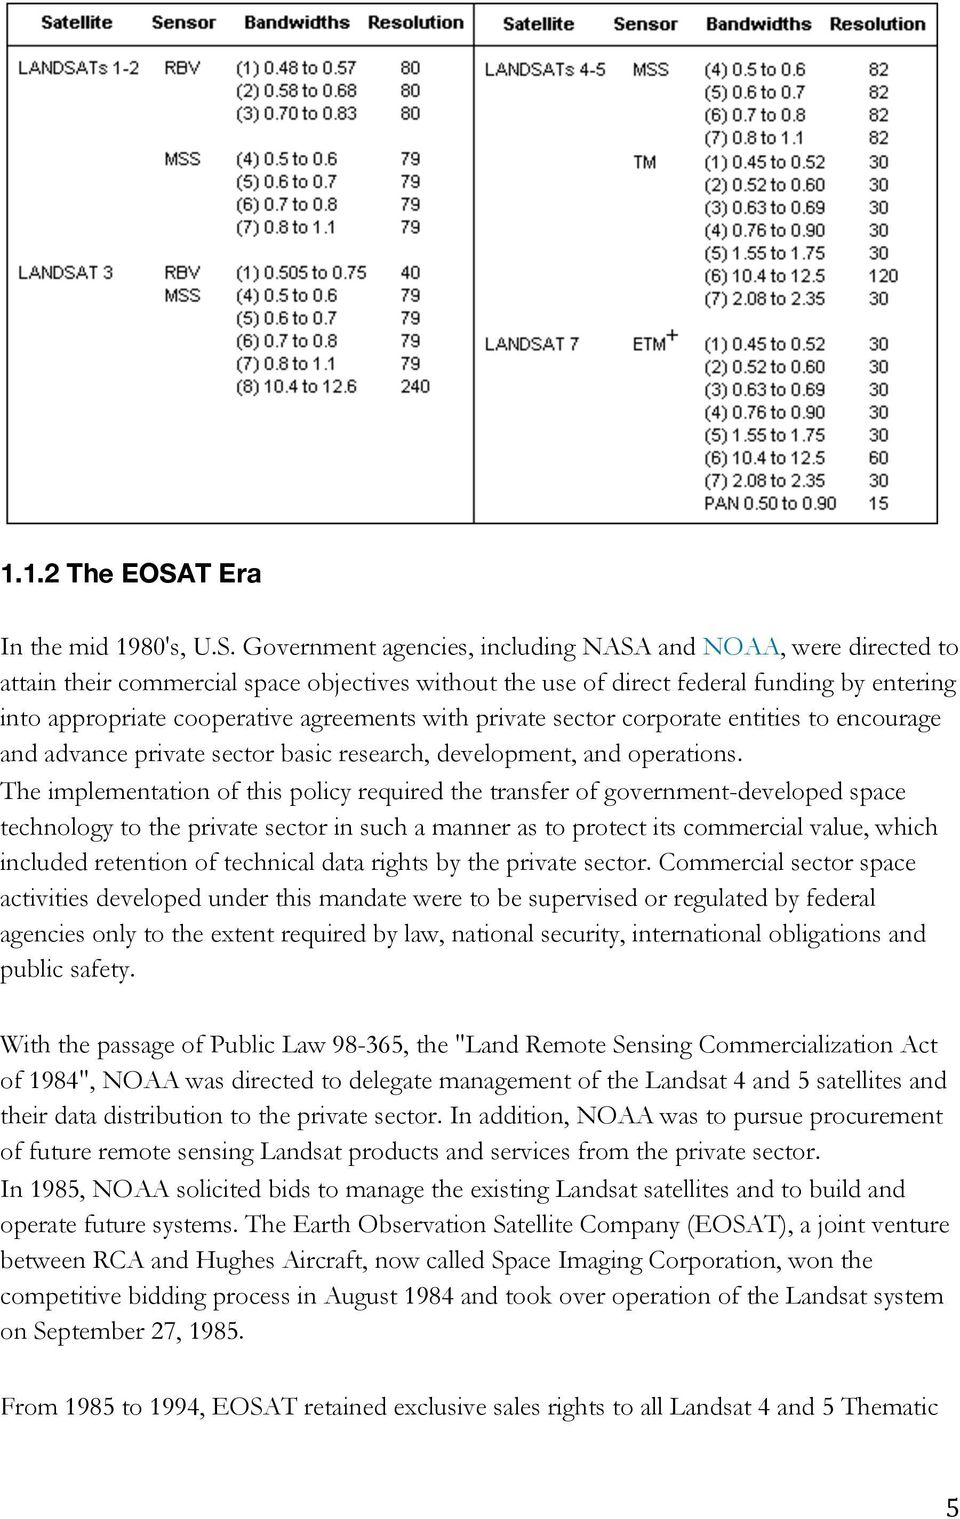 Government agencies, including NASA and NOAA, were directed to attain their commercial space objectives without the use of direct federal funding by entering into appropriate cooperative agreements